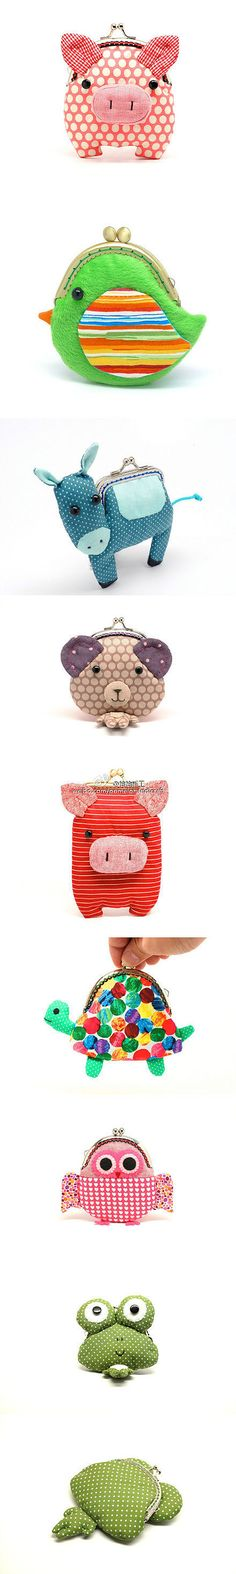 animal coin purses! these are too adorable --- the pig!!! For Jordan's $ on concession day!